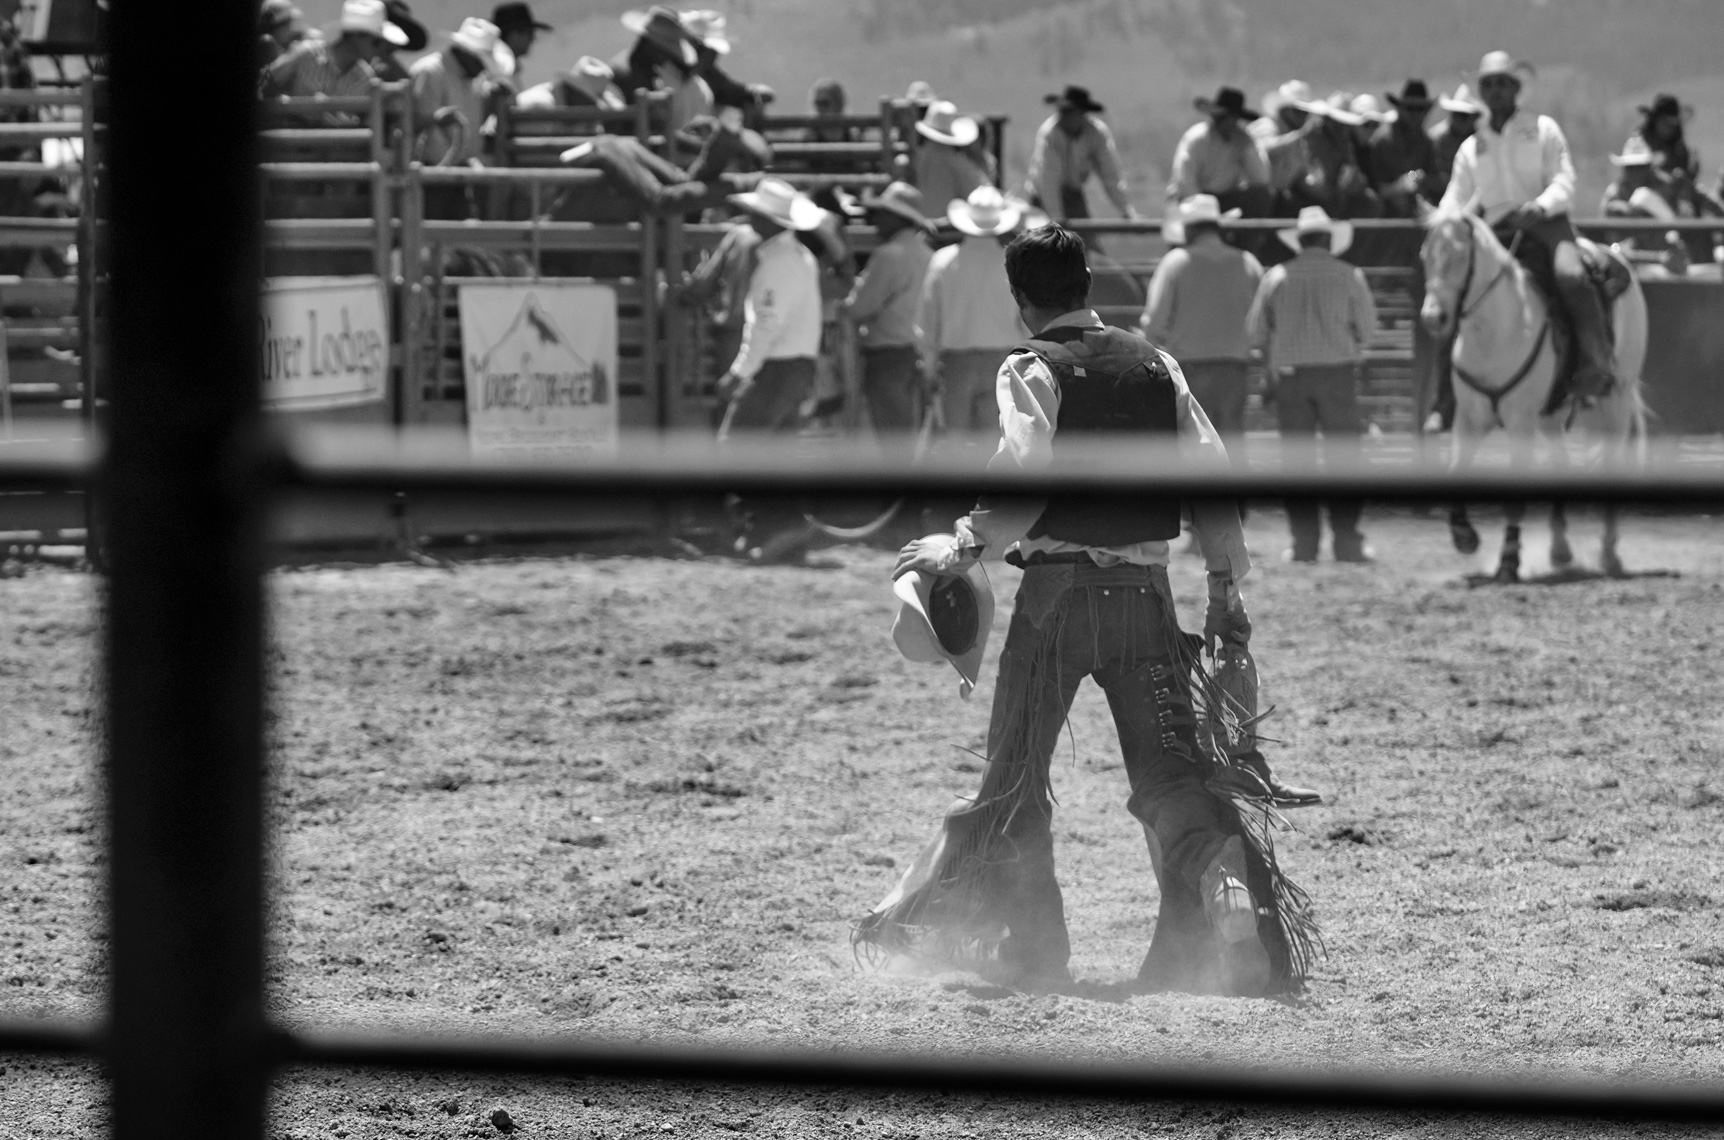 Roadtripping_BridgeportRodeo_WalkingItOff_BroncRider02_Action_Personal_Retouched_Web